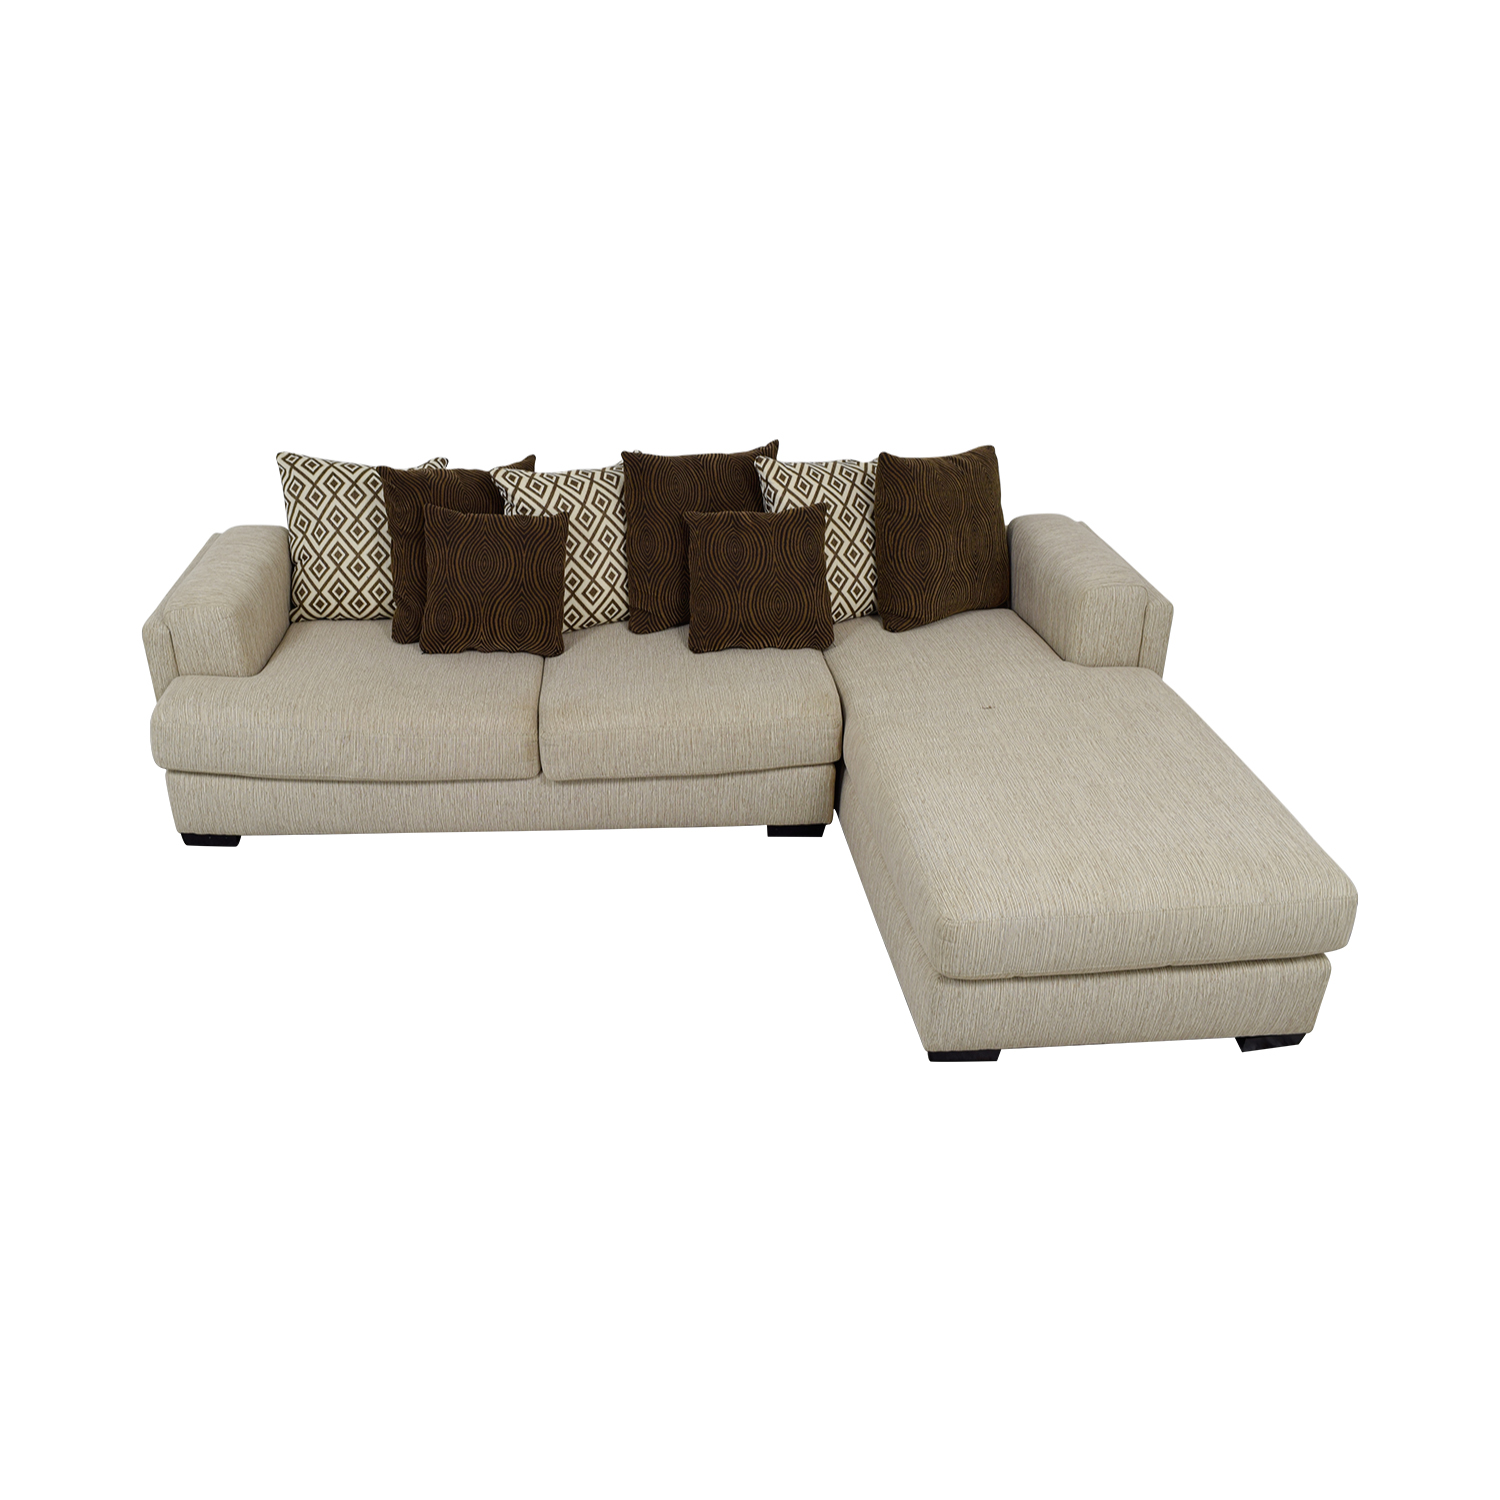 Raymour & Flanigan Urbanity Beige Chaise Sectional / Sofas